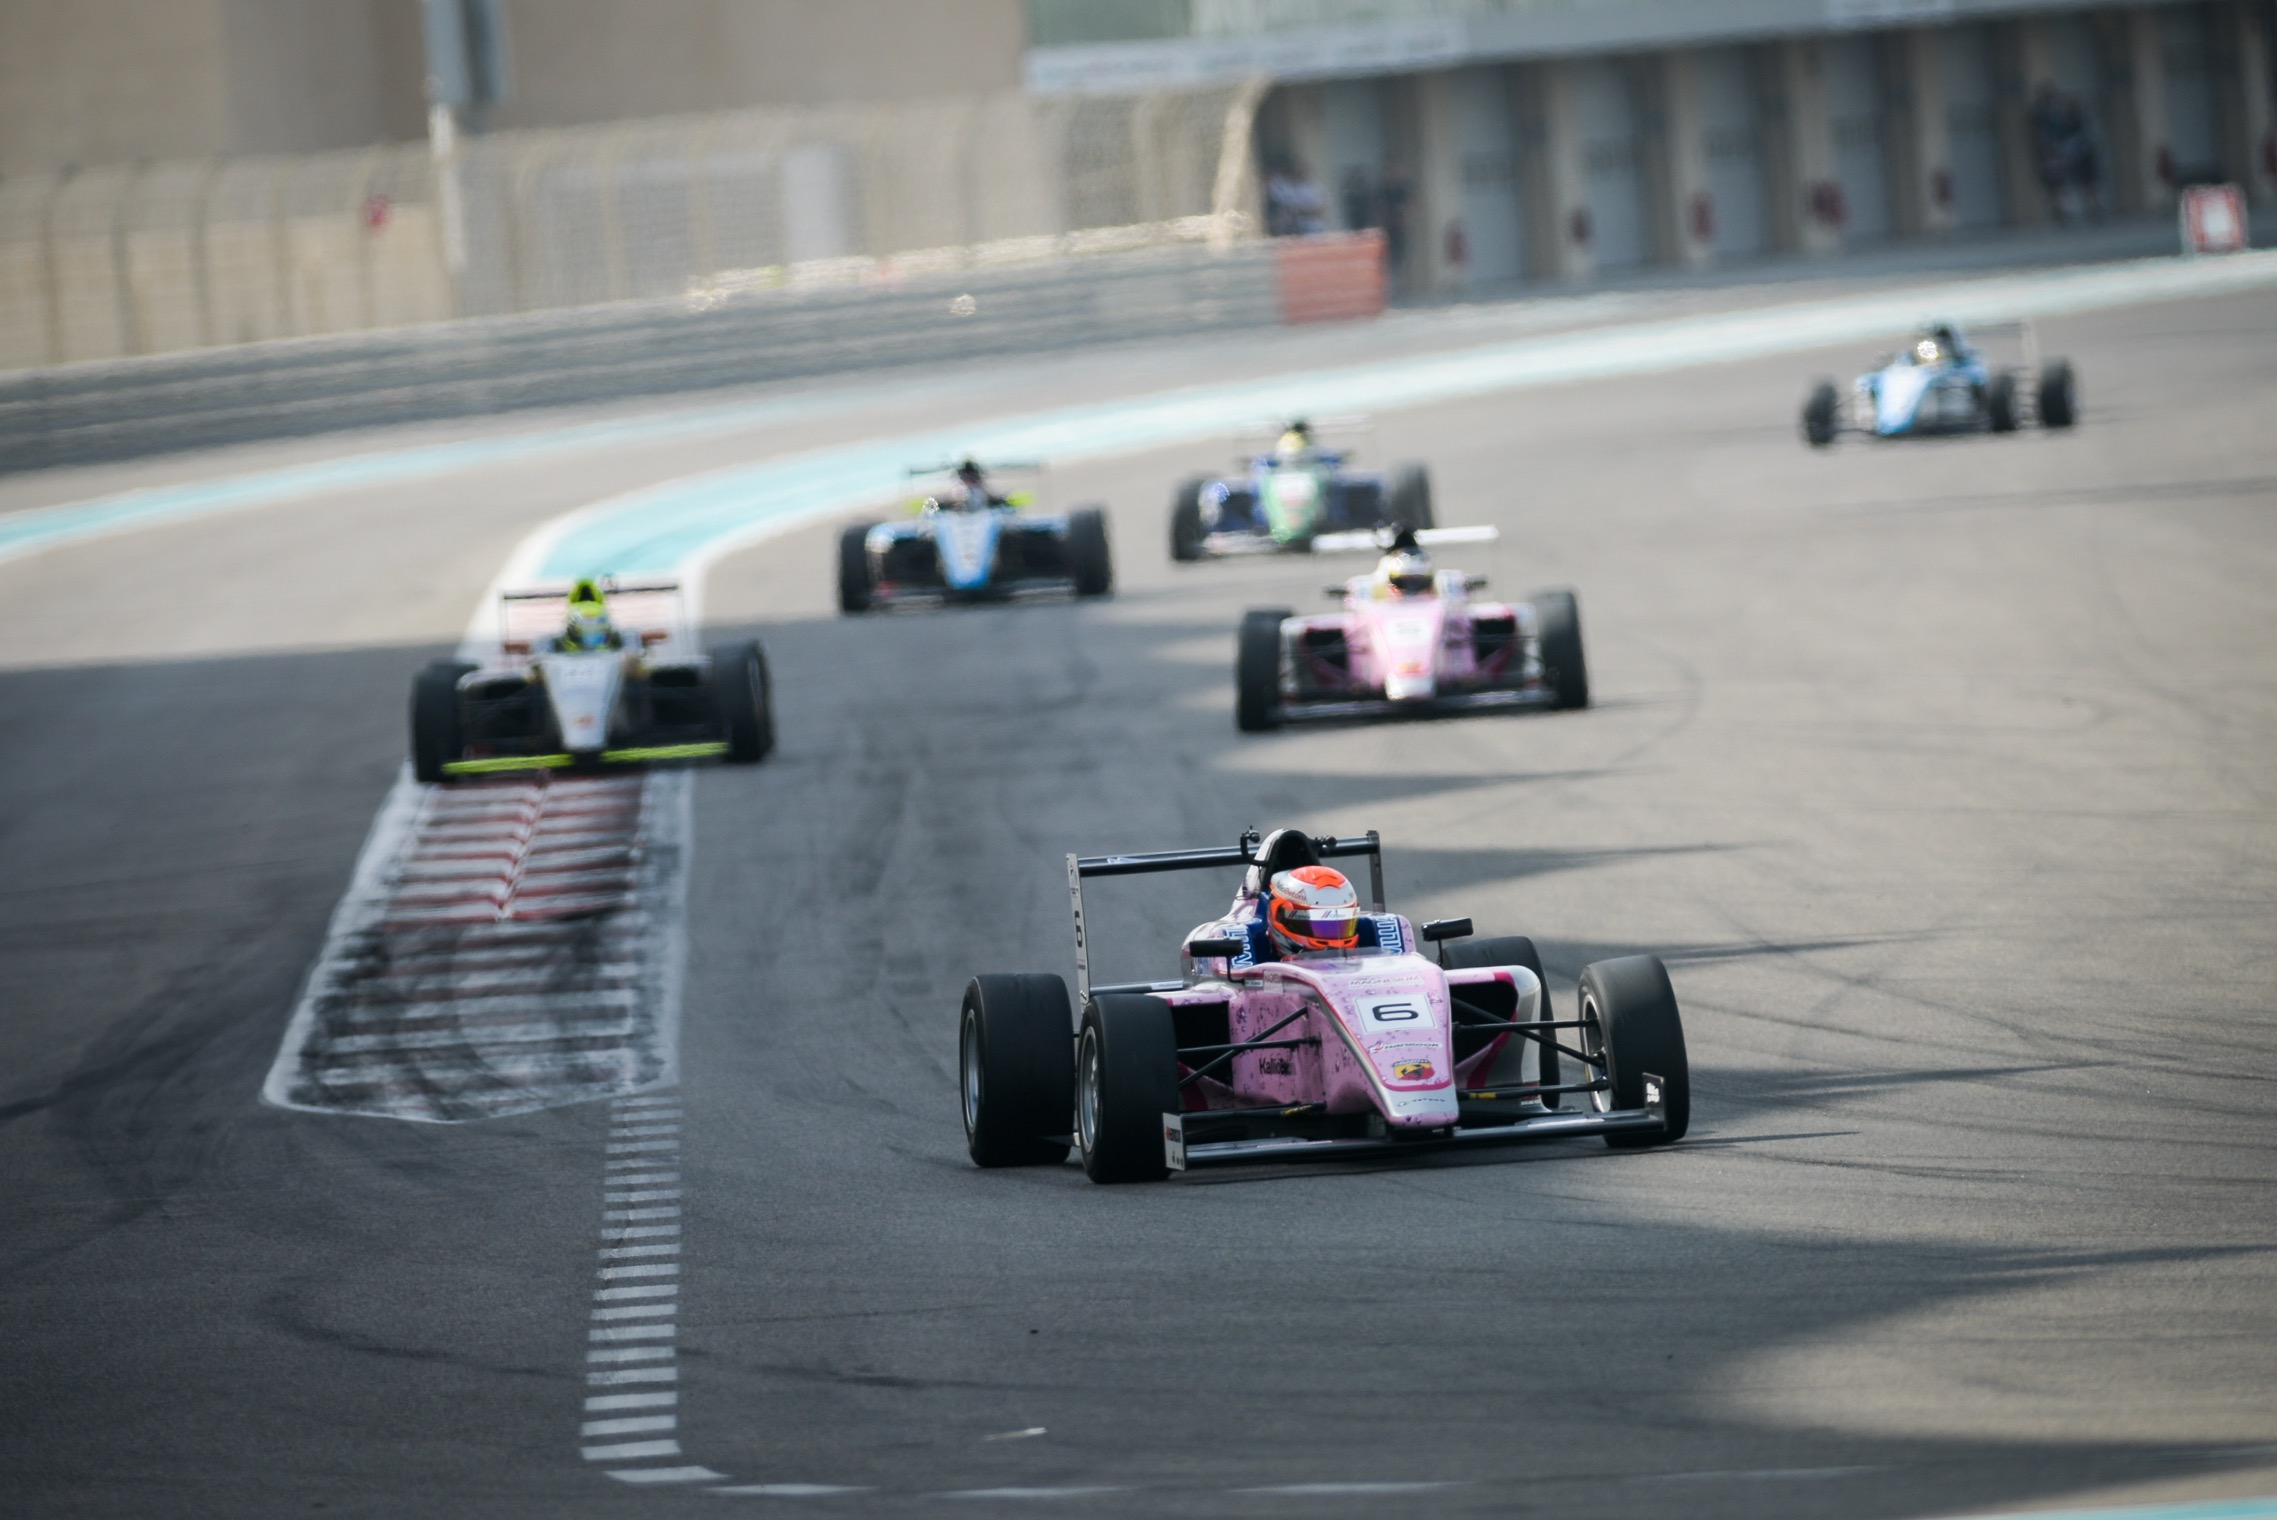 NEW RACE WINNERS CORDEEL AND ALATALO STEP UP AS F4UAE TITLE WILL BE DECIDED AT GRAND FINALE IN DUBAI